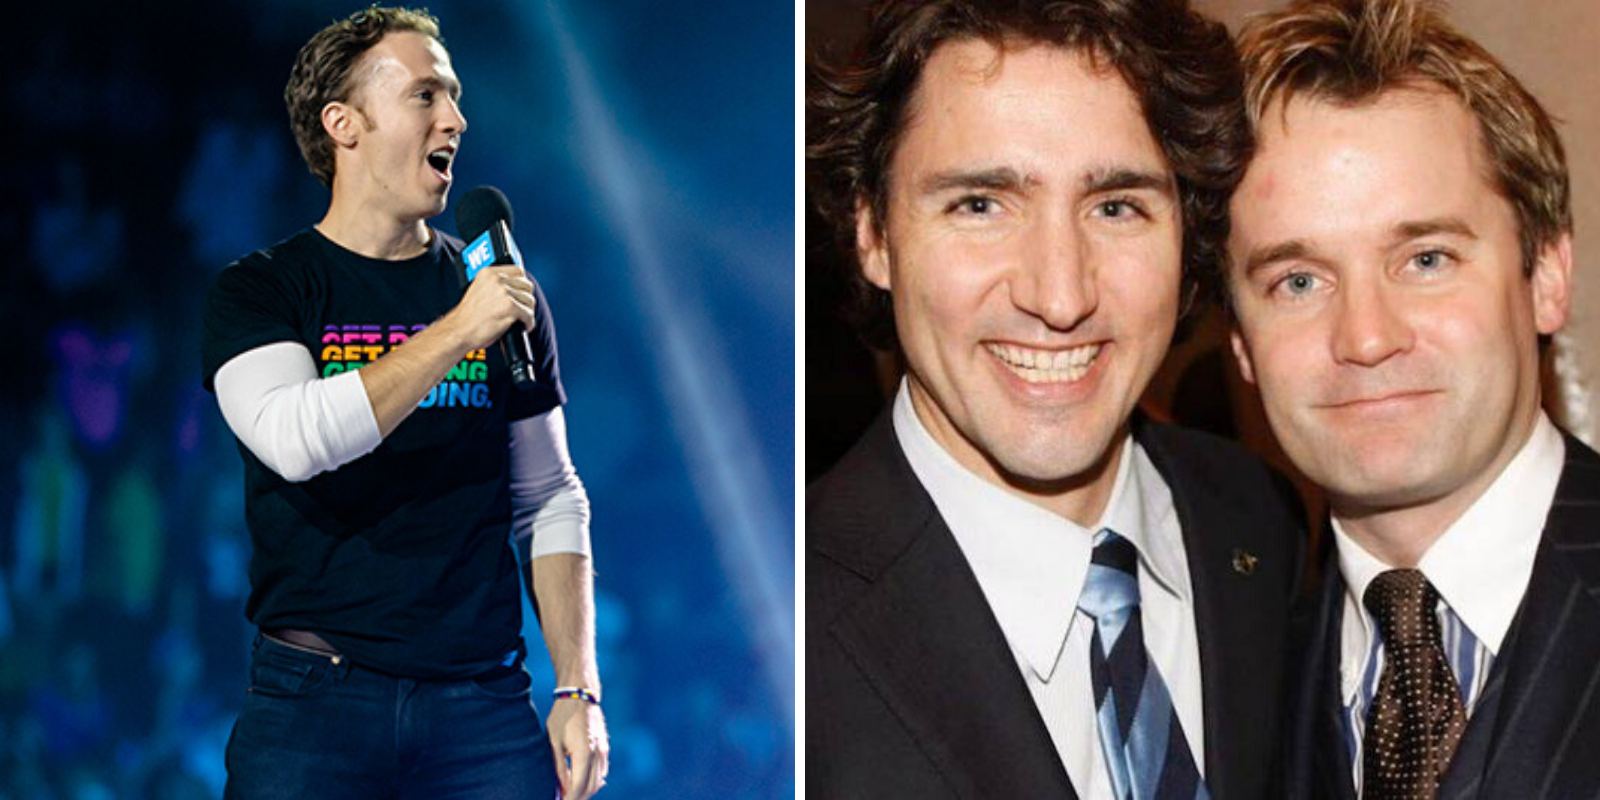 EXCLUSIVE: Trudeau minister, chief of staff worked for group that supported Kielburger charity